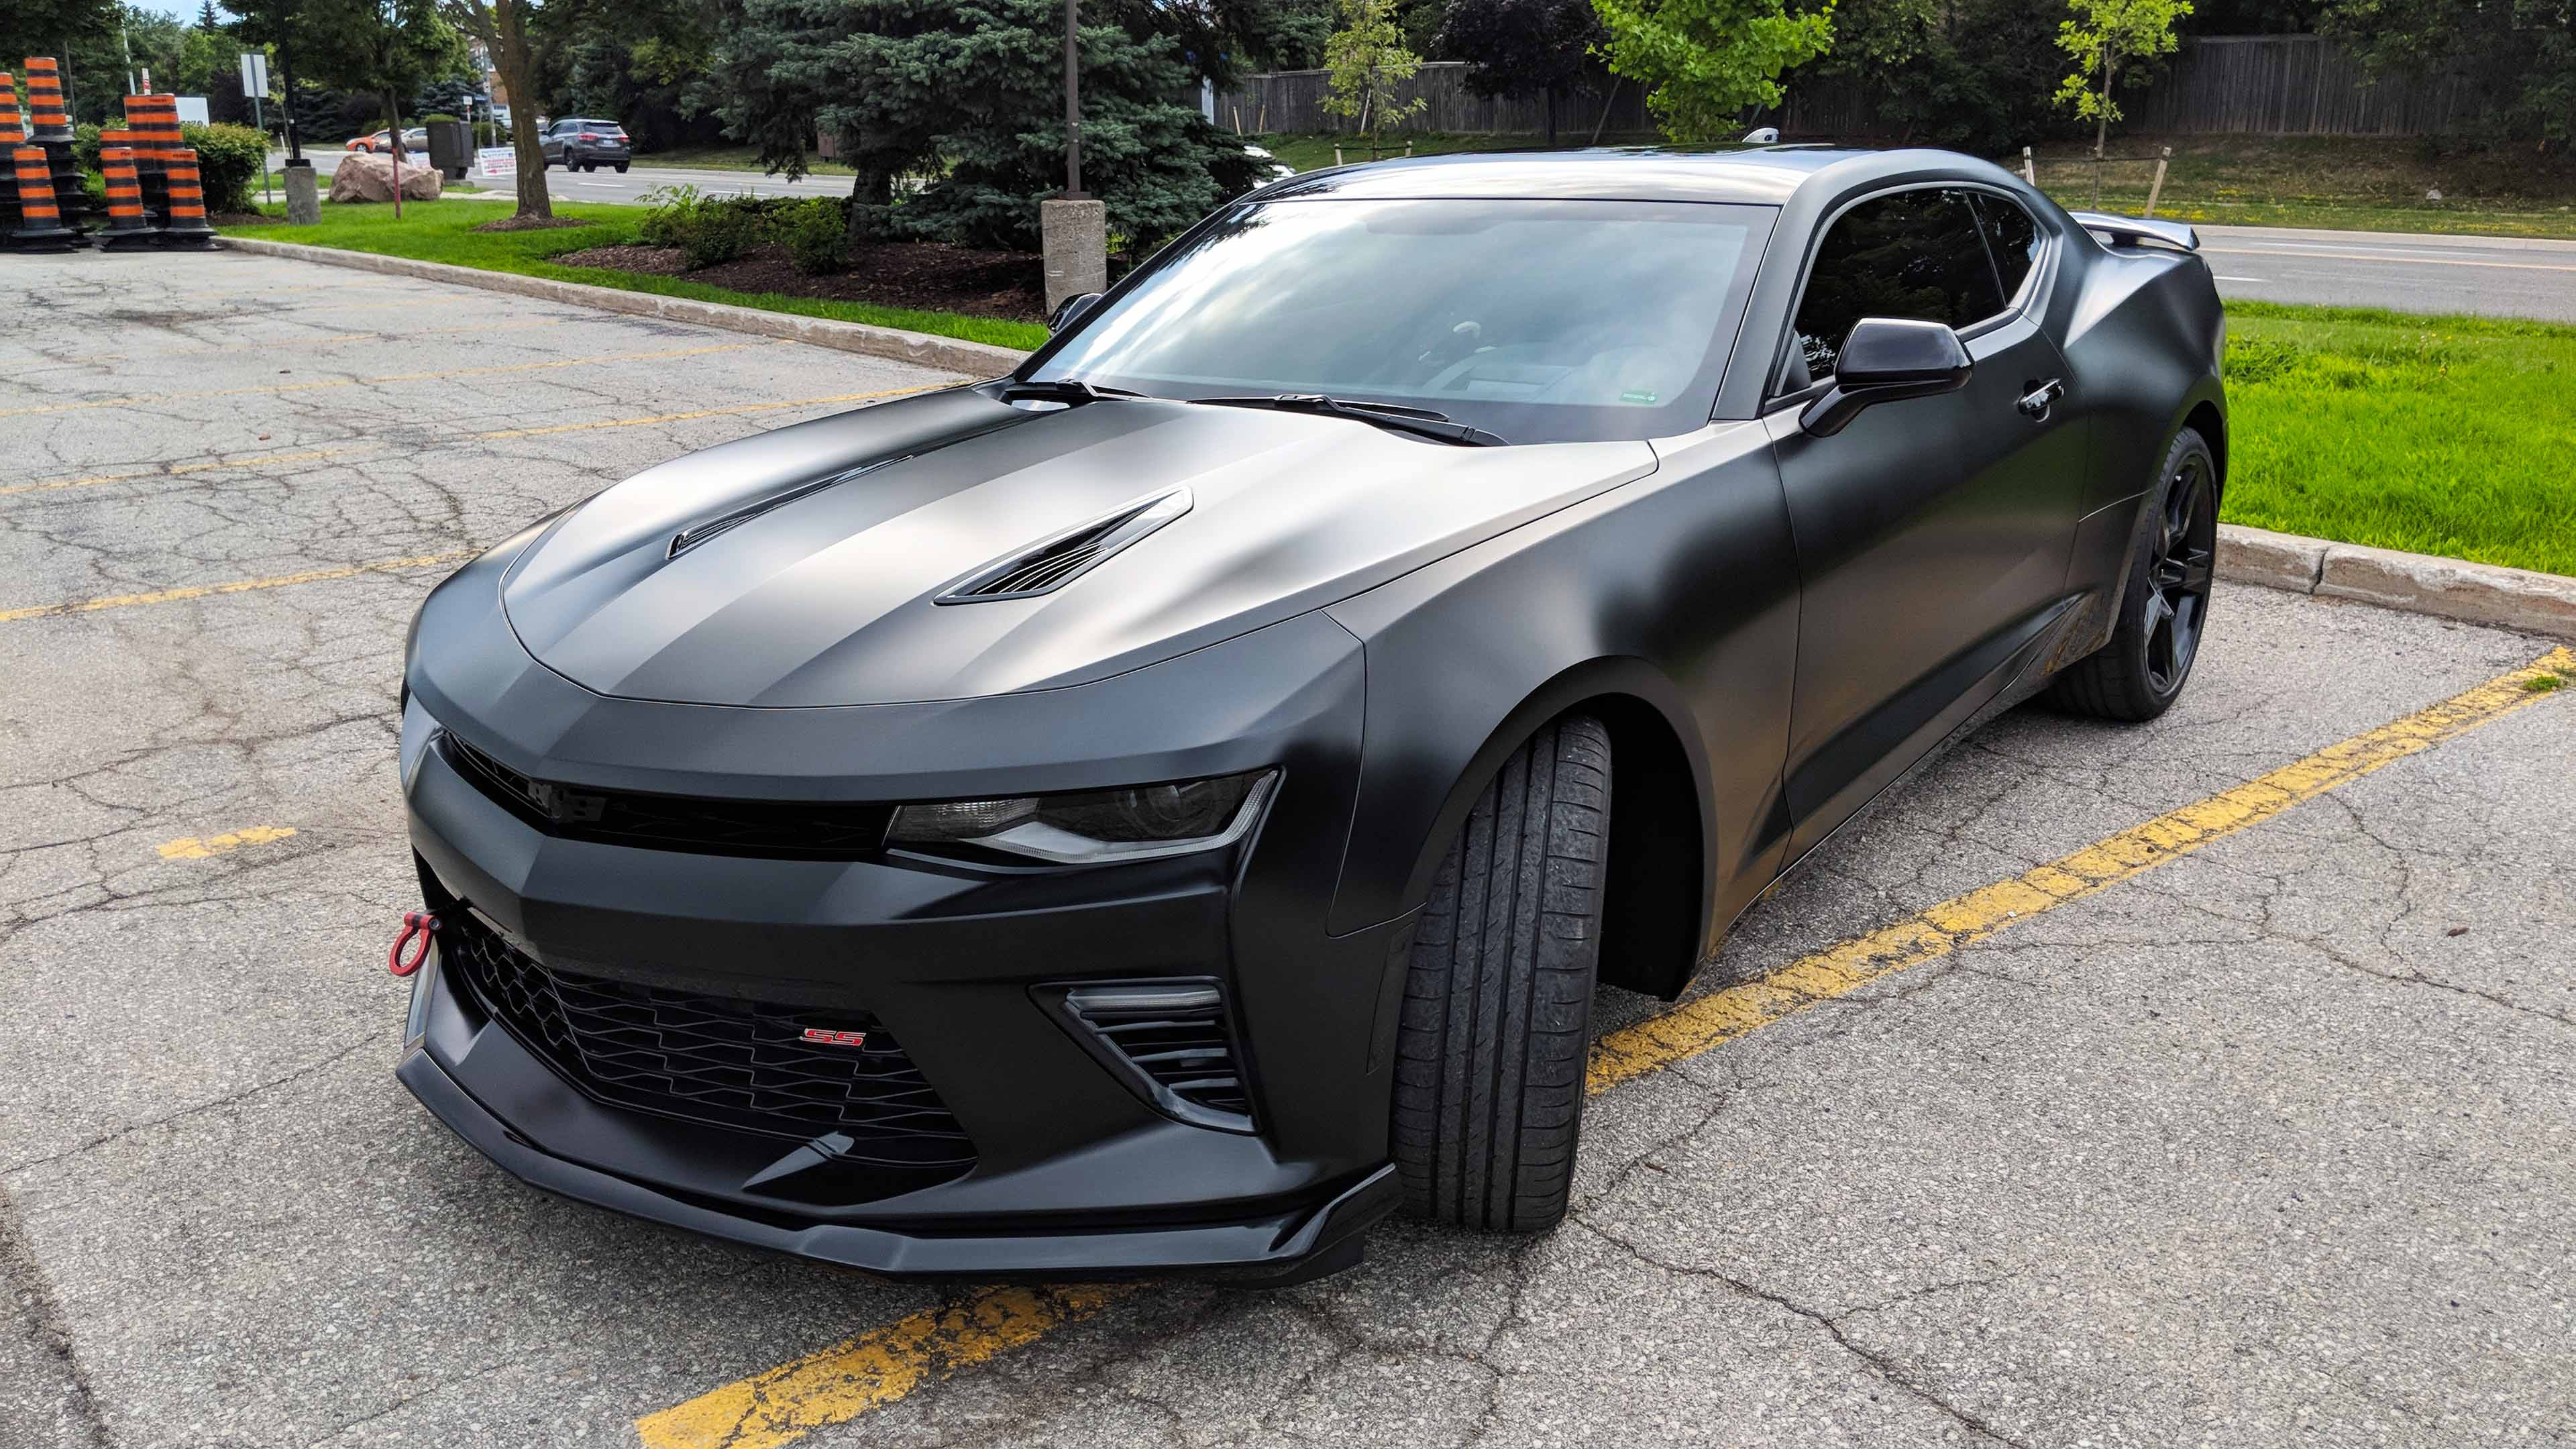 Chevy Camaro Avery satin black wrap